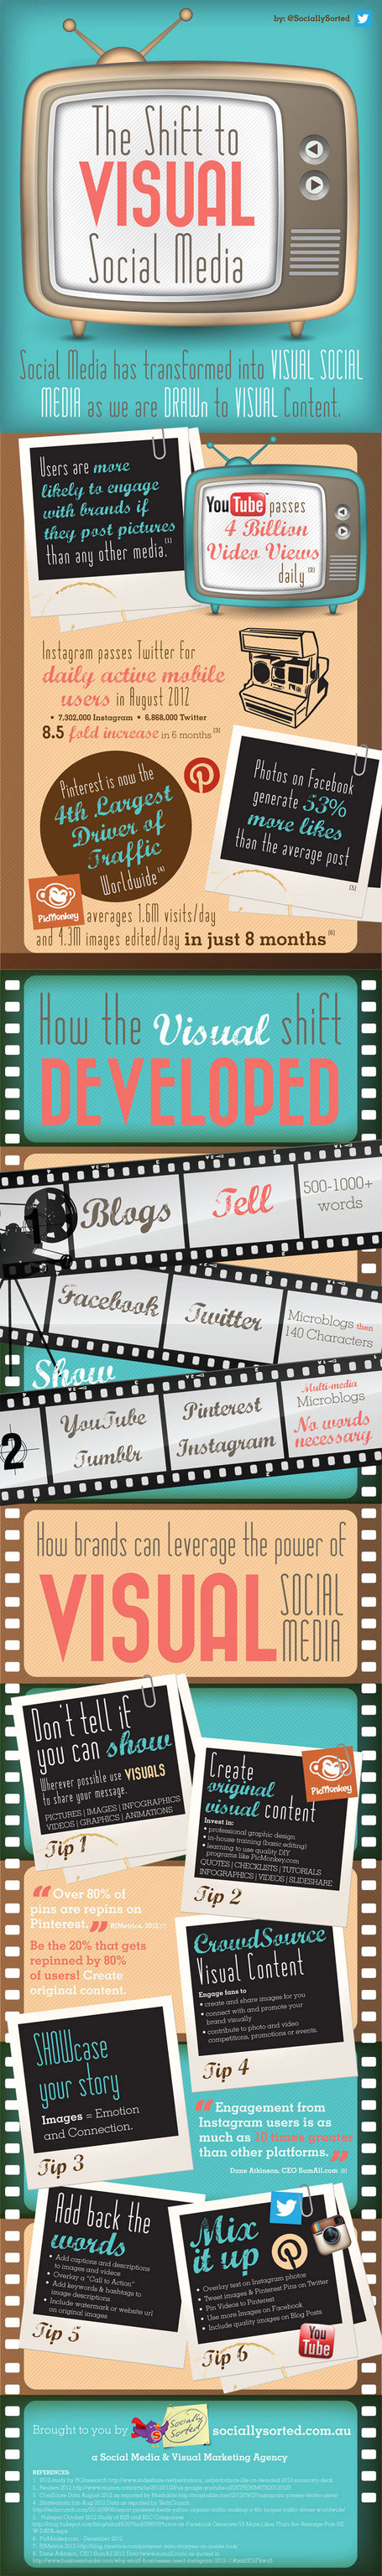 Imagery in Social Media  & How to Leverage Visual Content [infographic] | DV8 Digital Marketing Tips and Insight | Scoop.it